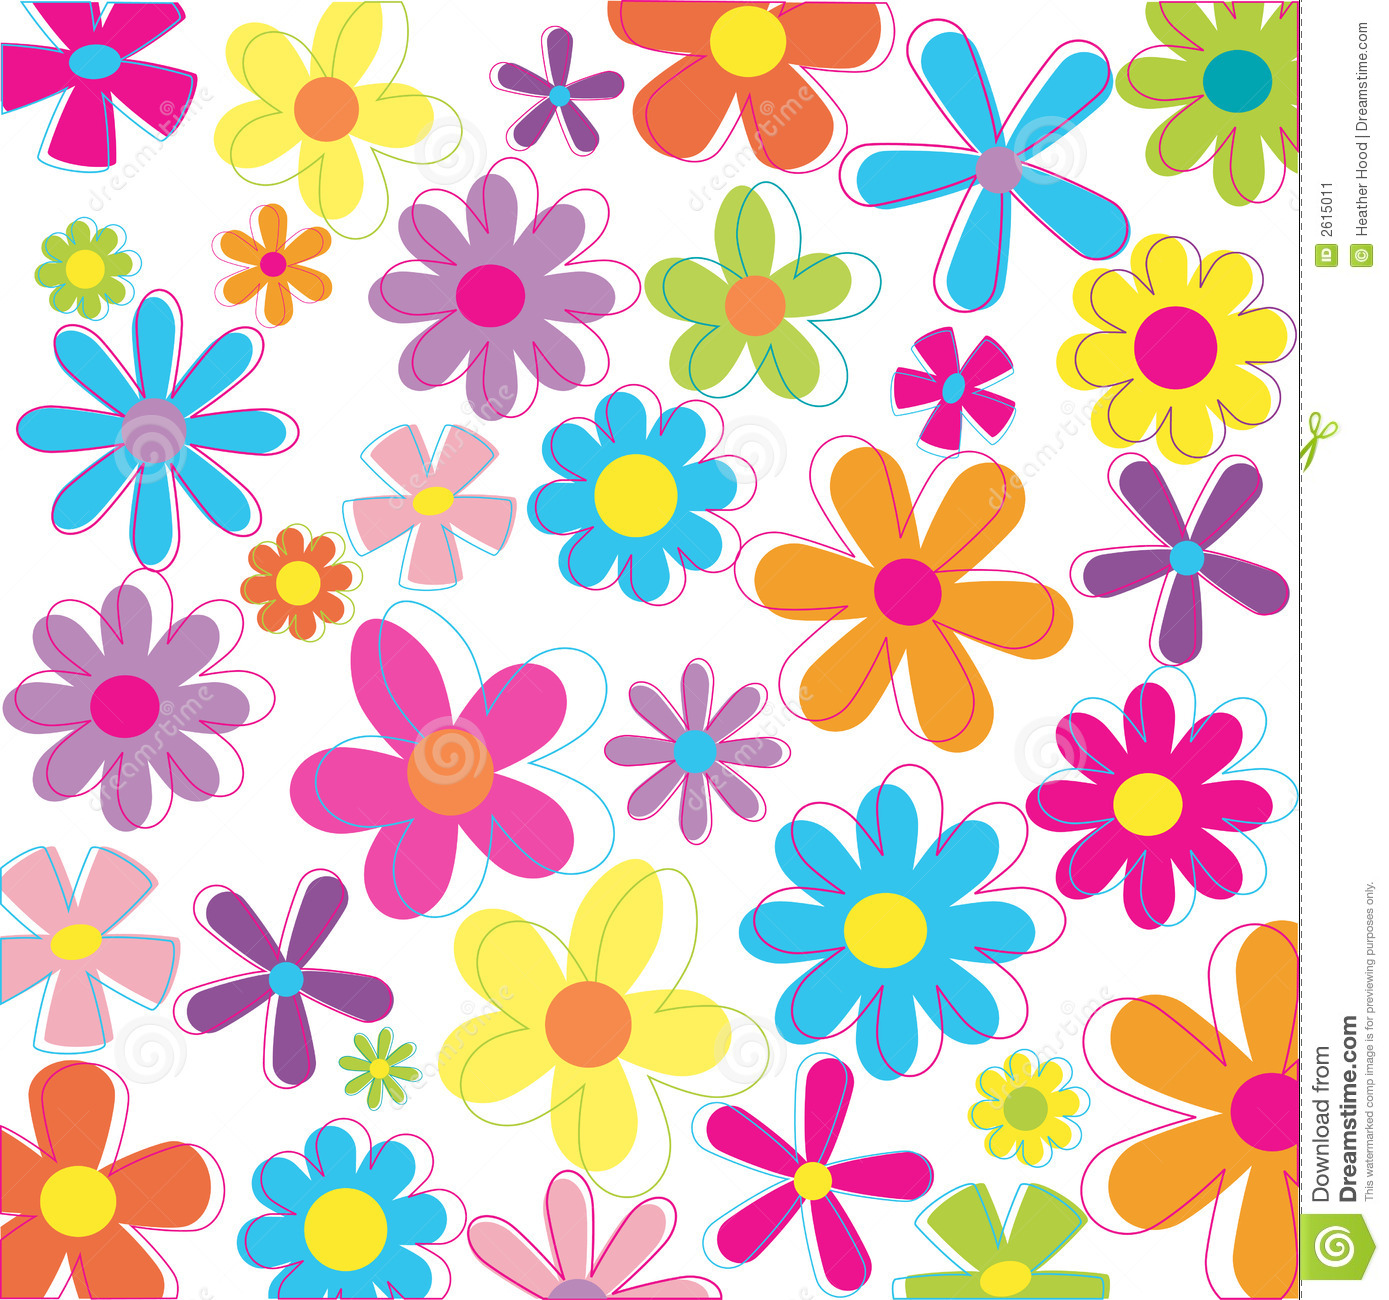 Multicolored flowers in retro style and colors.